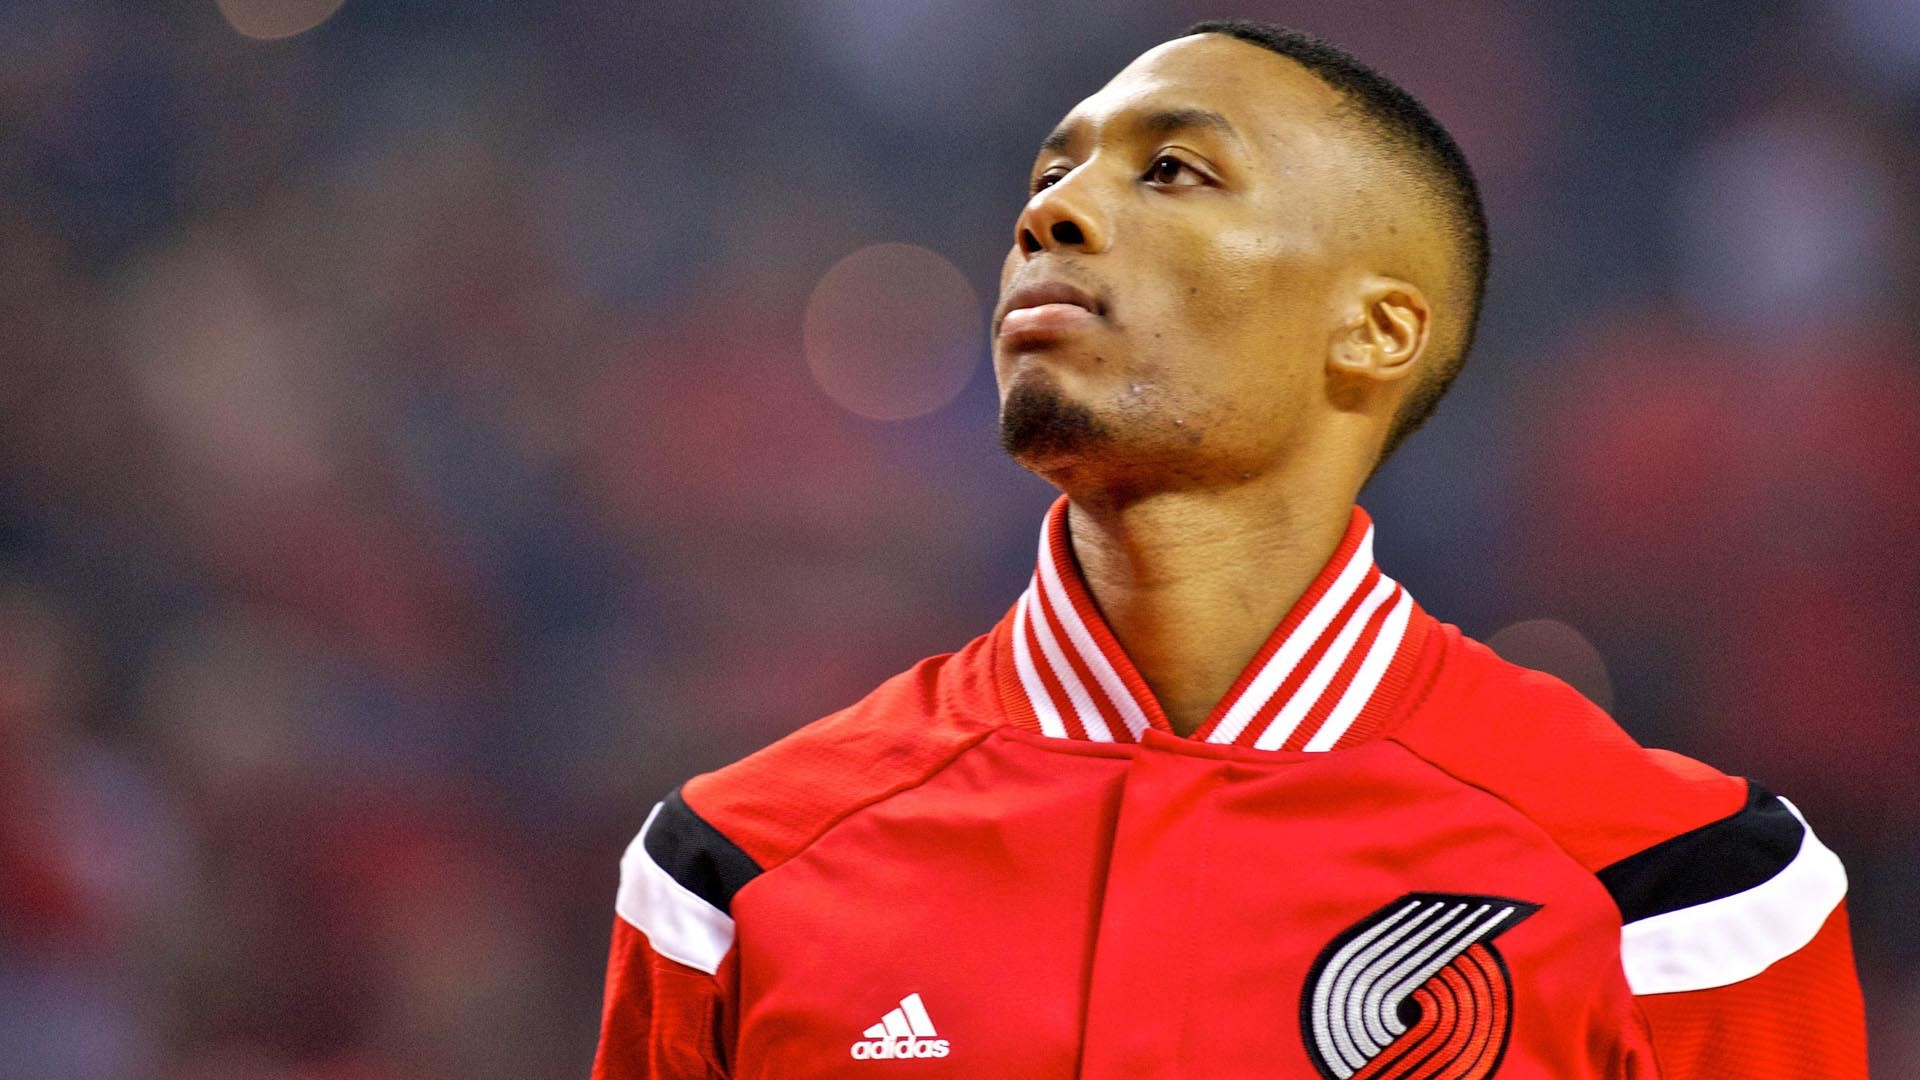 Res: 1920x1080, HD Damian Lillard Wallpapers HCW004907 1024x576. downloadb. Pages: 1 2 3